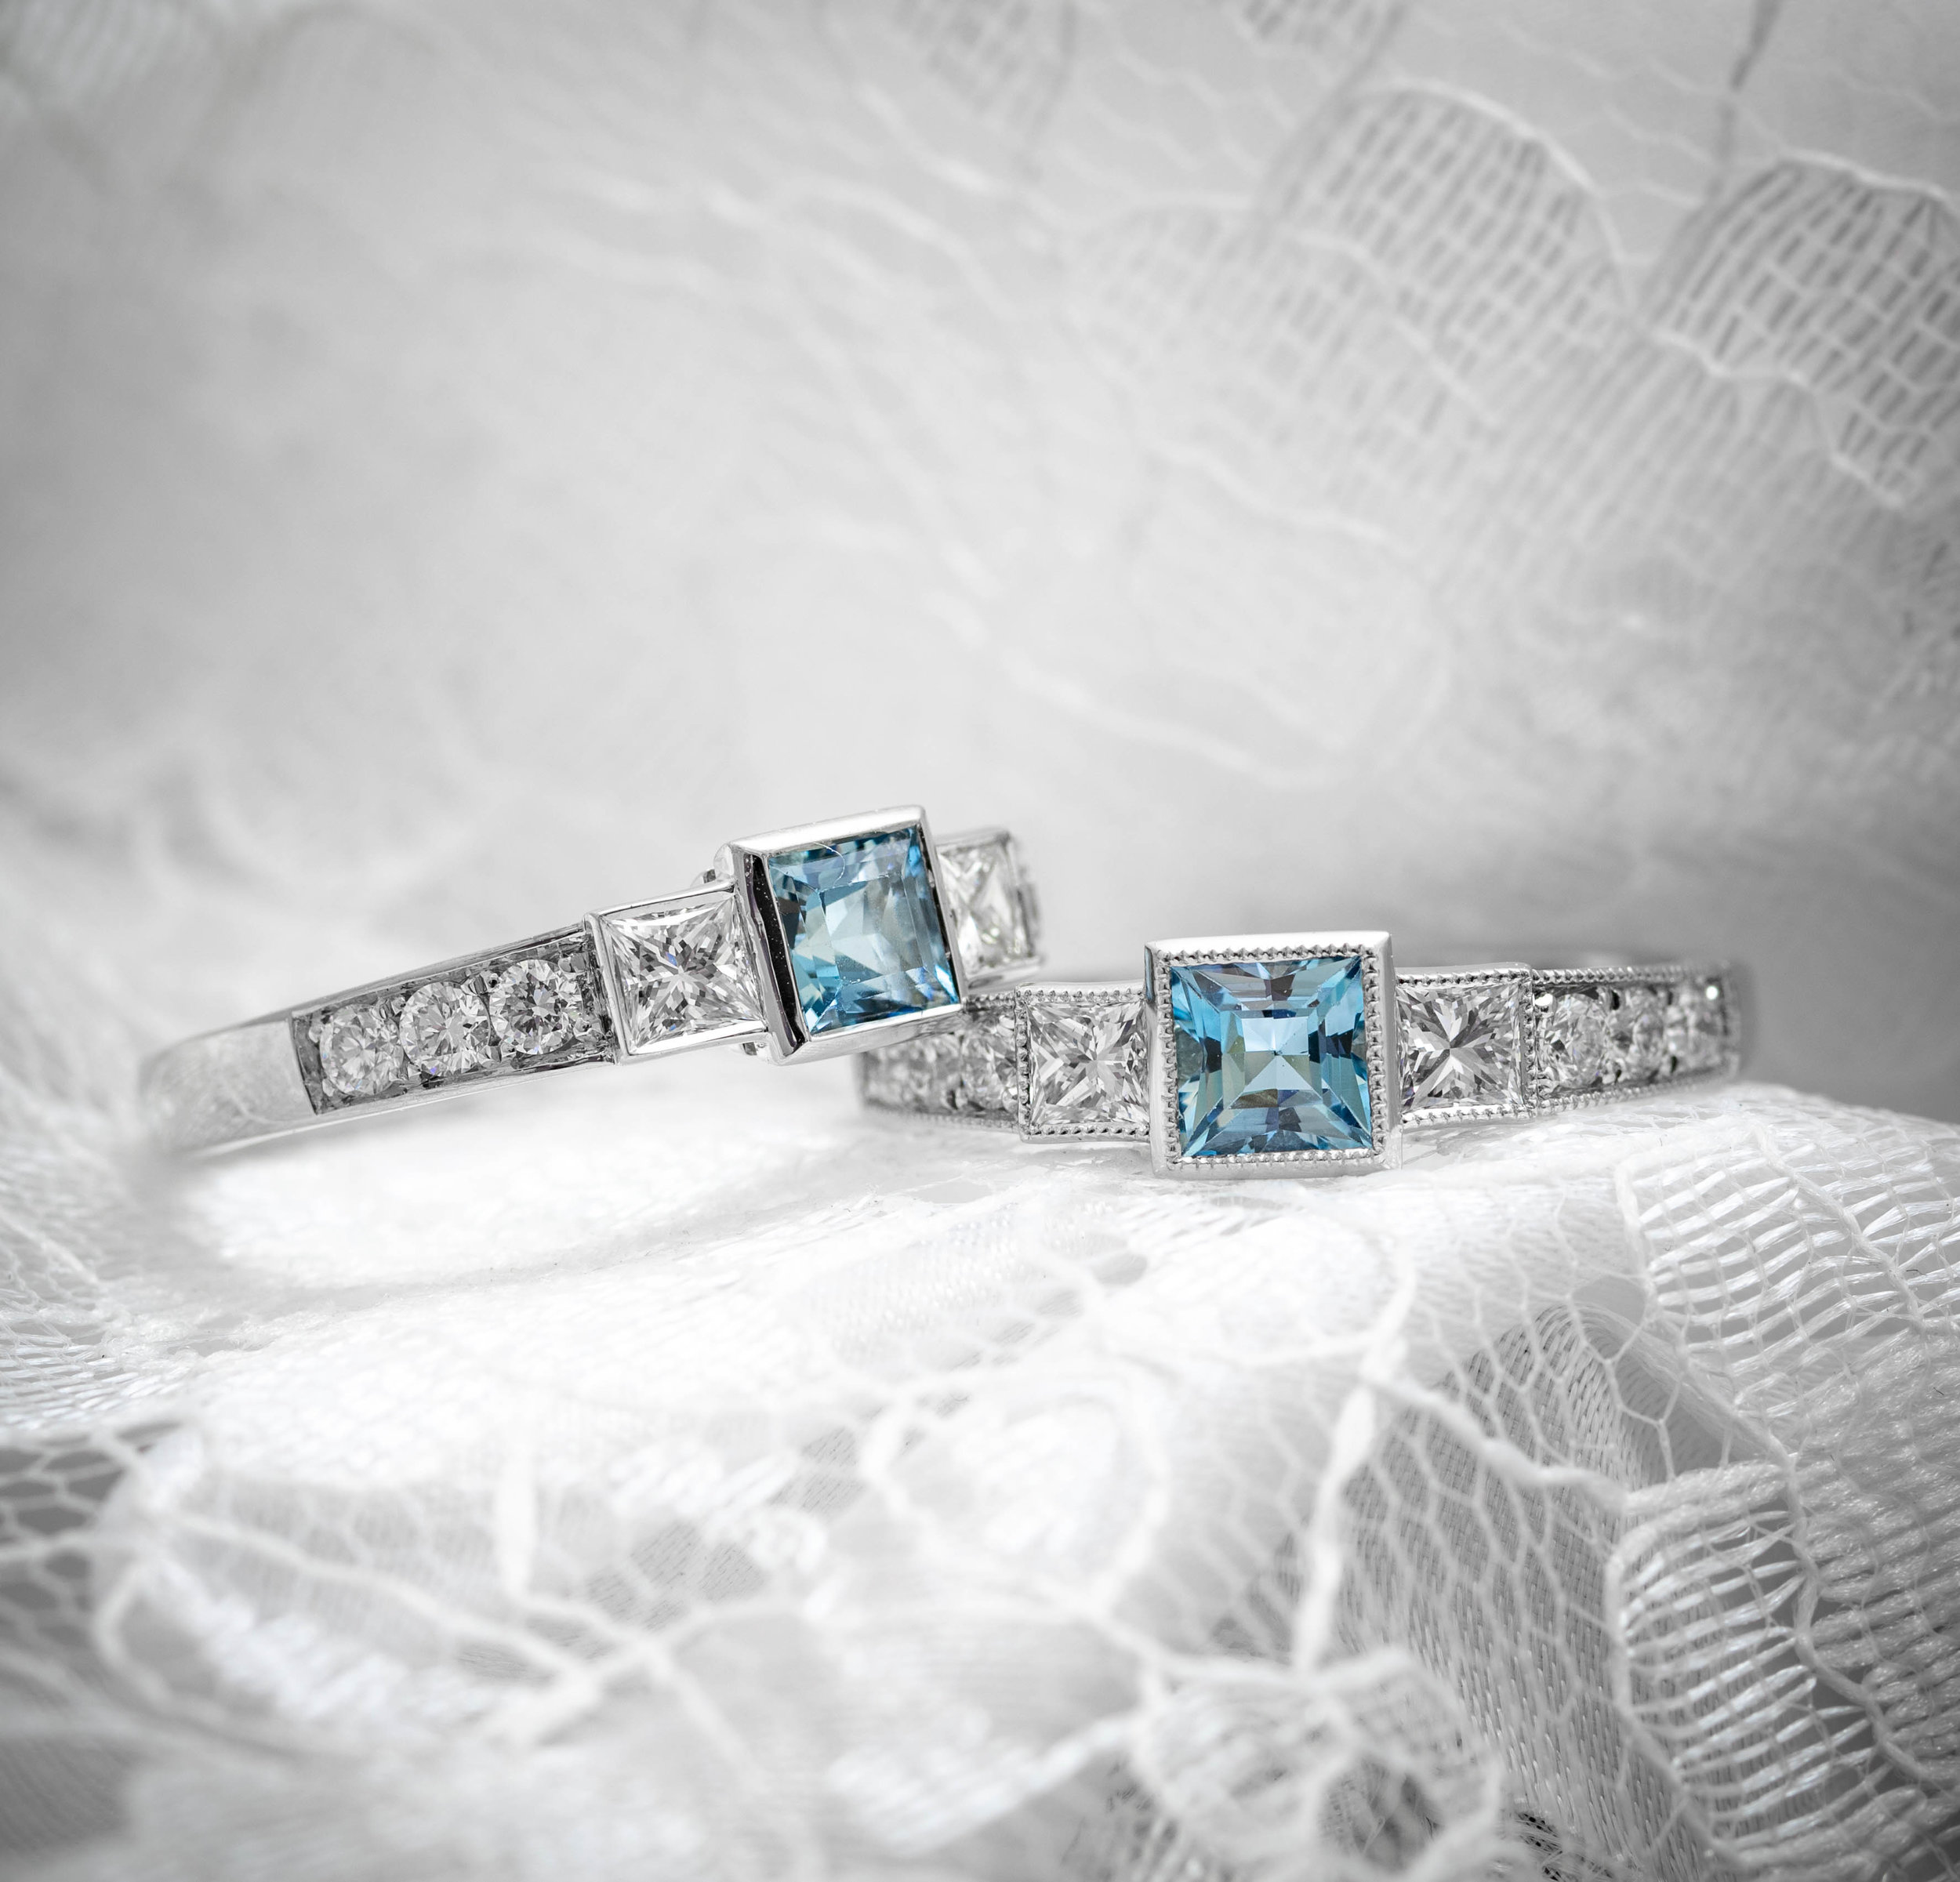 Platinum mounted, aquamarine and diamond set rings. One with plain edged collets and the same ring with millegrain edge decoration. Made in Chichester, England.